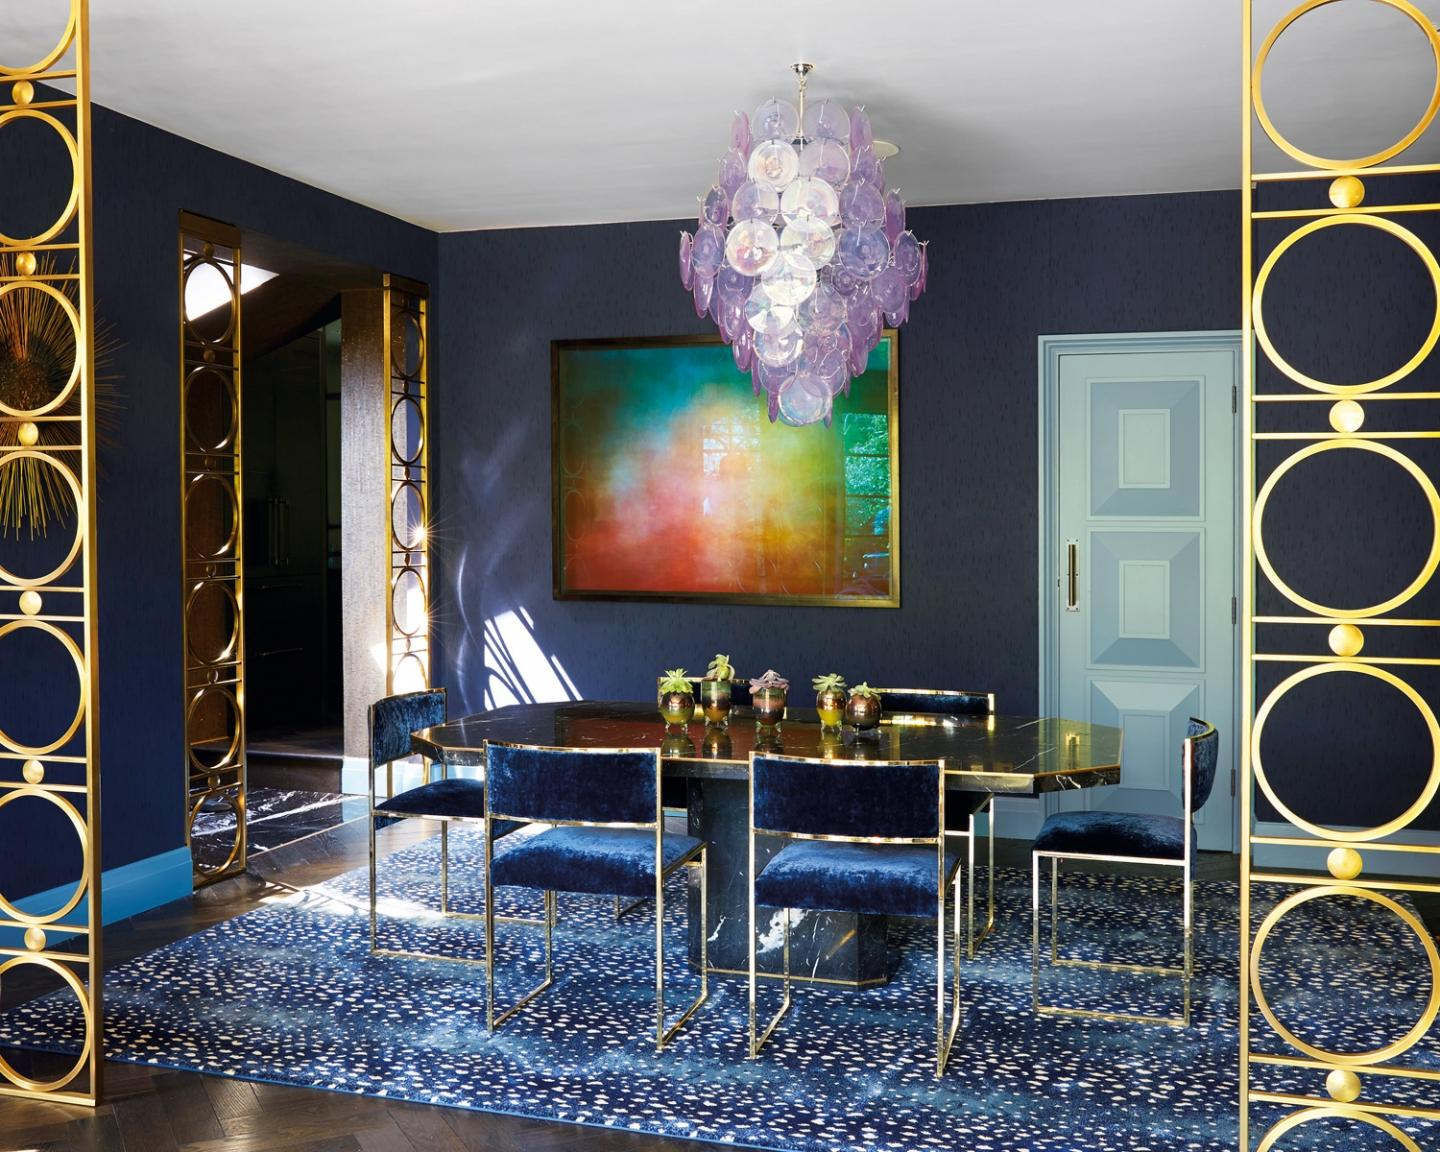 The dining room is an excercise in controlled contrasts, where a black marble table by Willy Rizzo intermingles with vintage chairs by Milo Baughman, a rug by Starck Carpets, a lilac disc chandelier by Vistosi and an artpiece by Jason Shulman